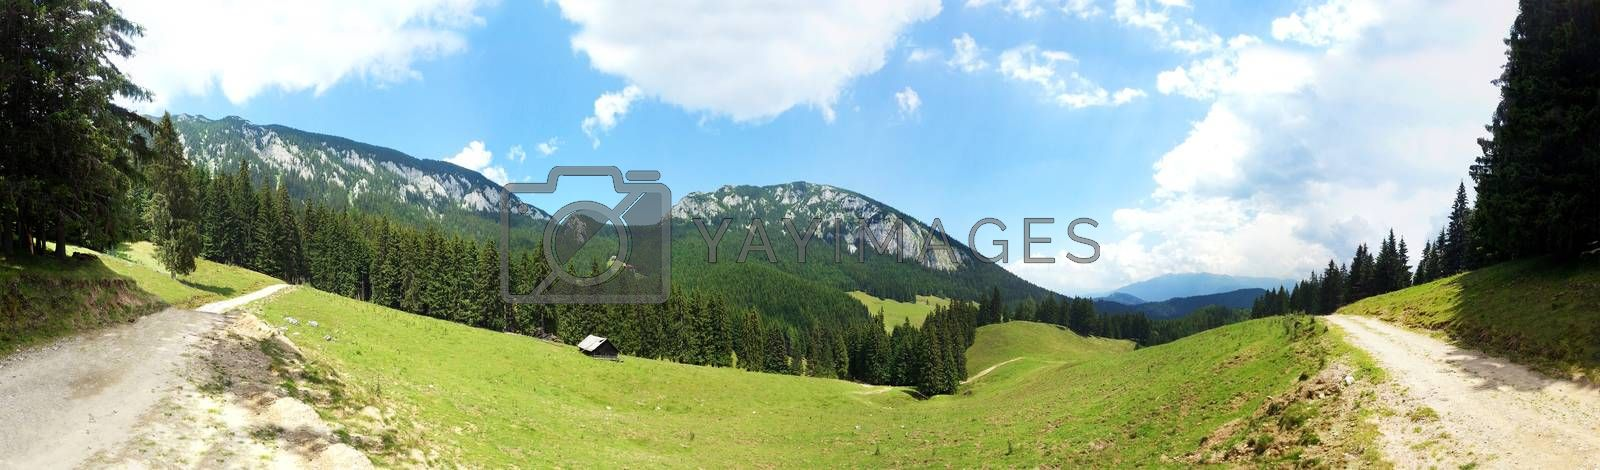 Panoramic view of Mount Piatra Craiului on summer, part of the Carpathian Range from Romania